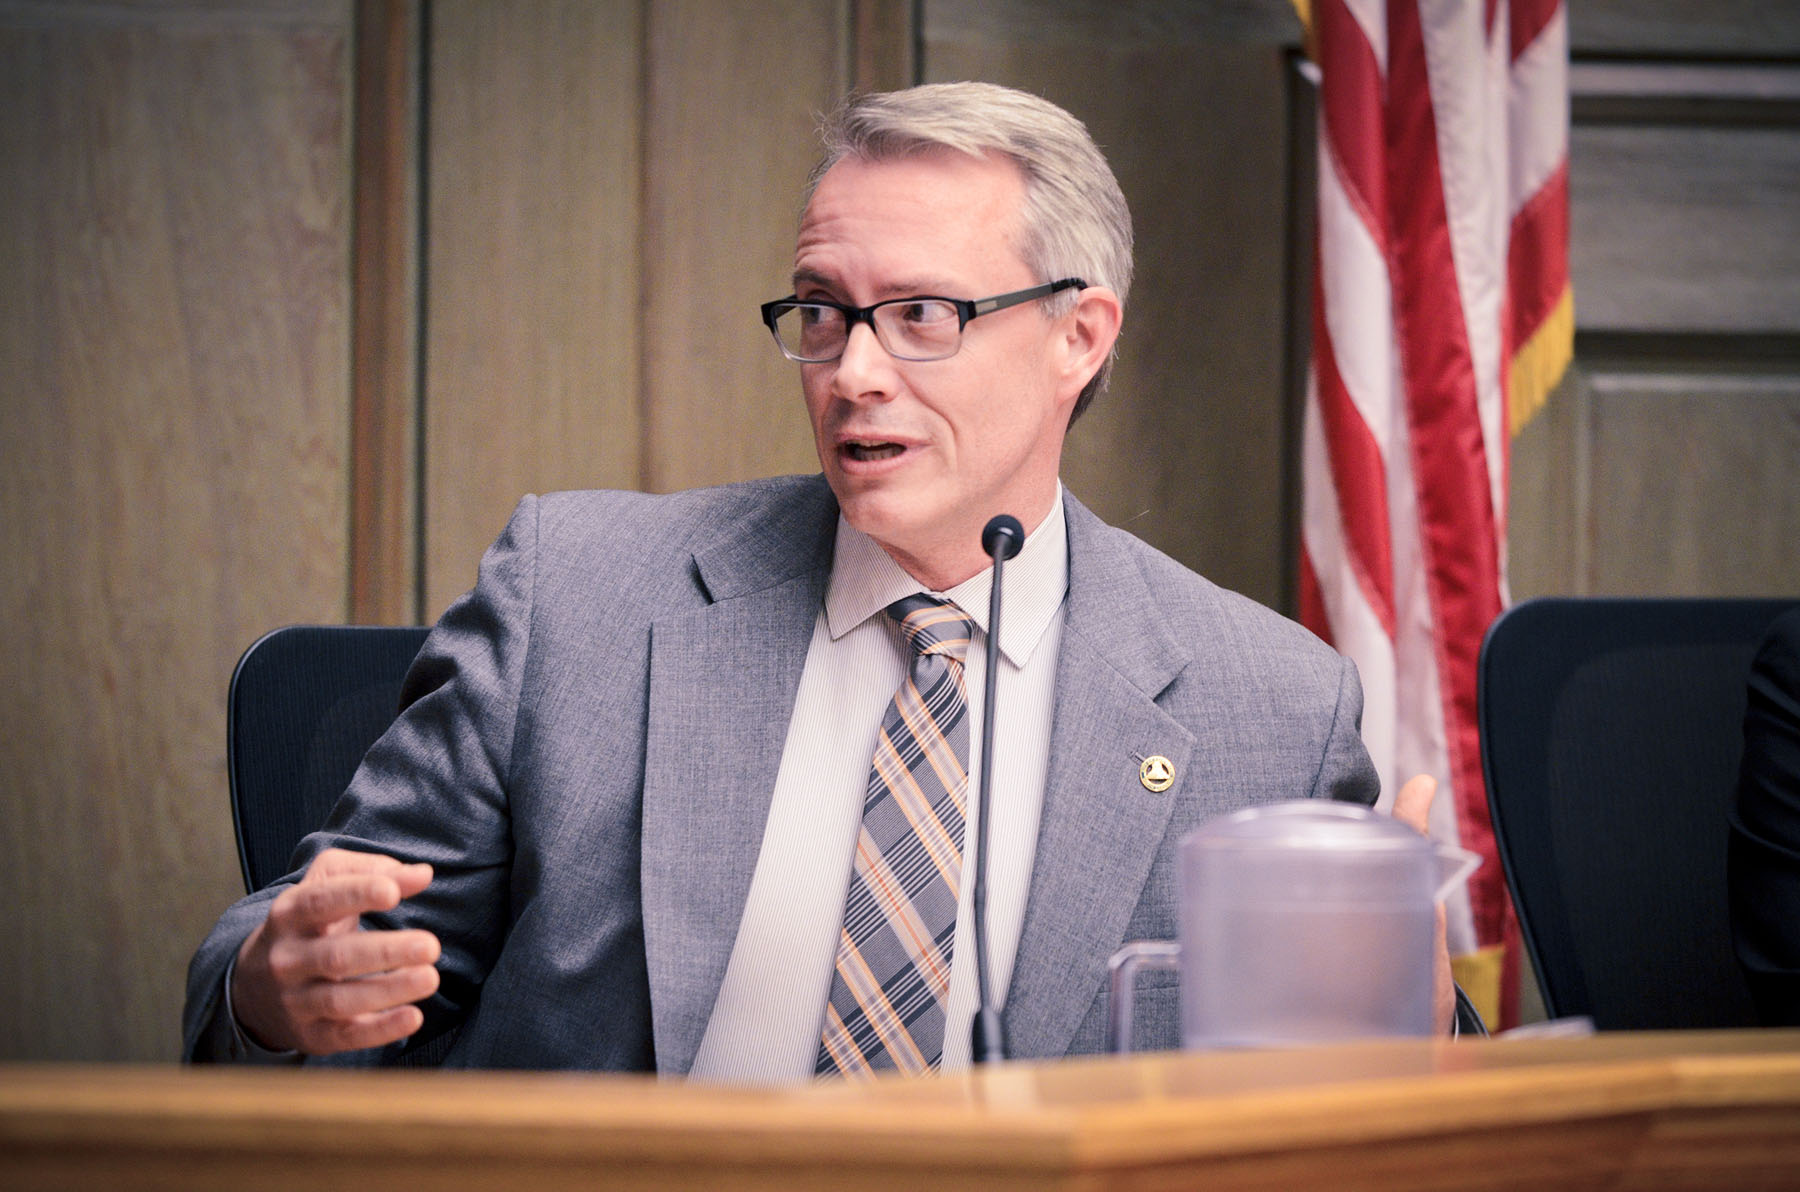 Asheville City Council member Gordon Smith. File photo by Max Cooper.